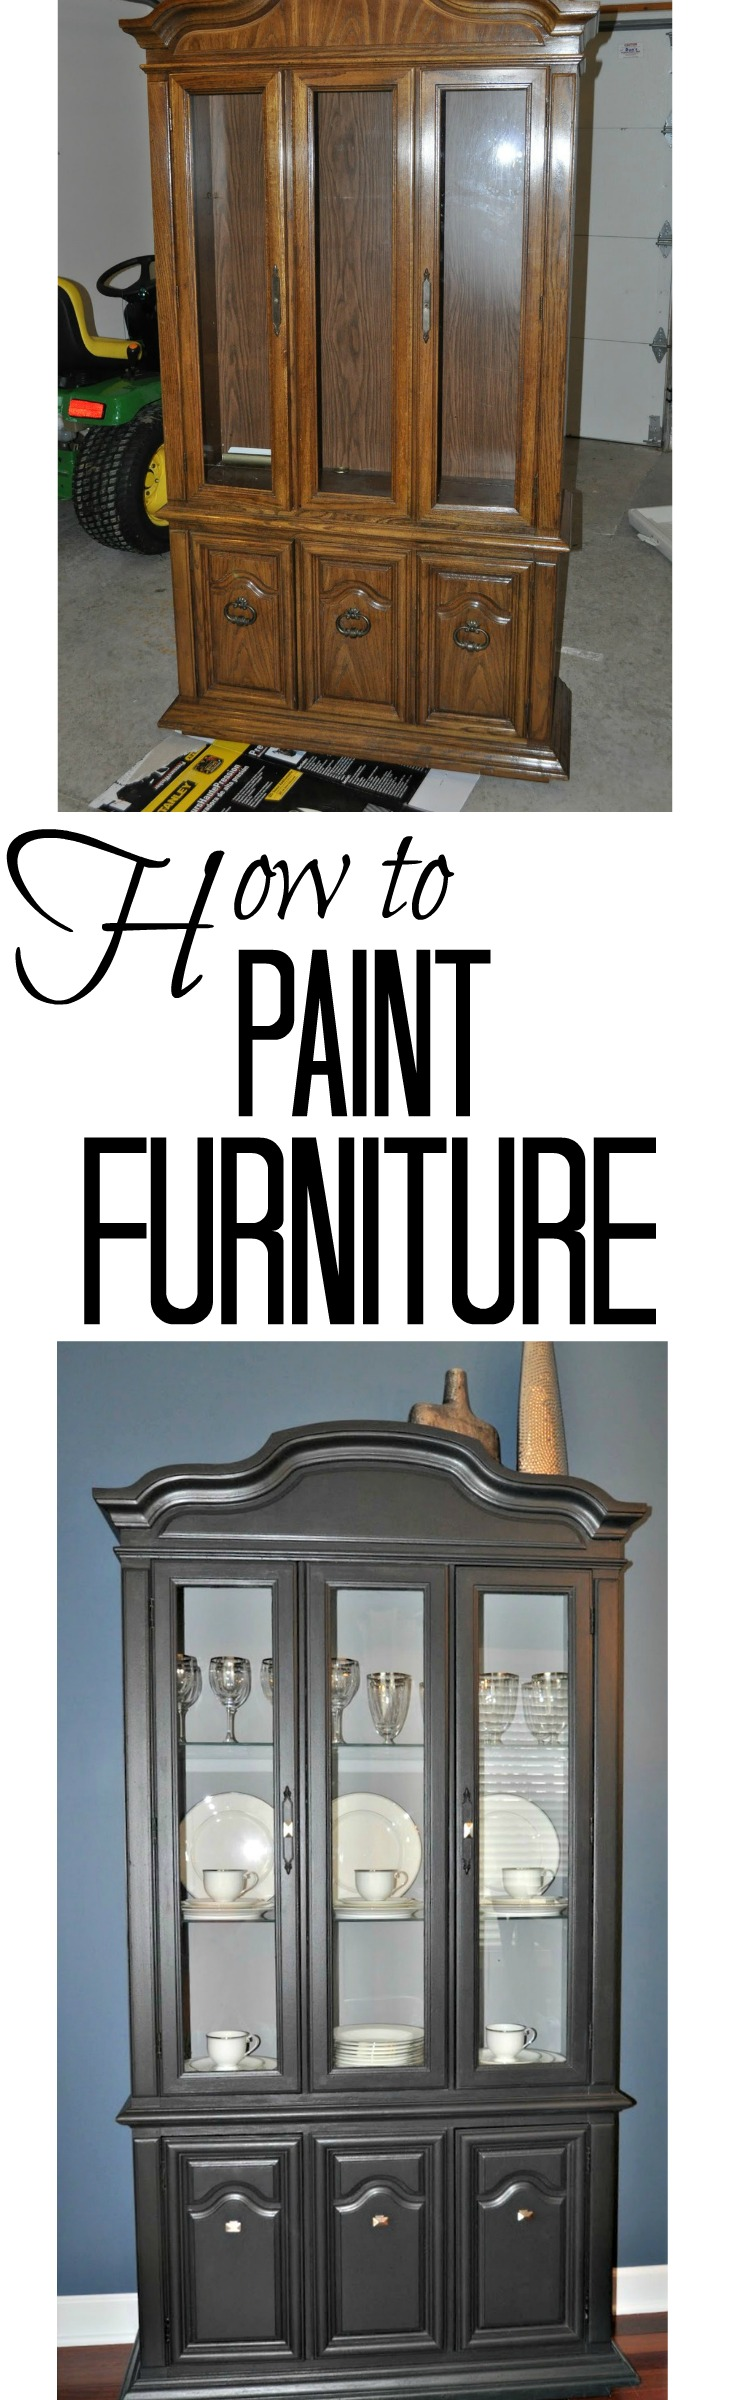 How to Paint Furniture | Decor and the Dog